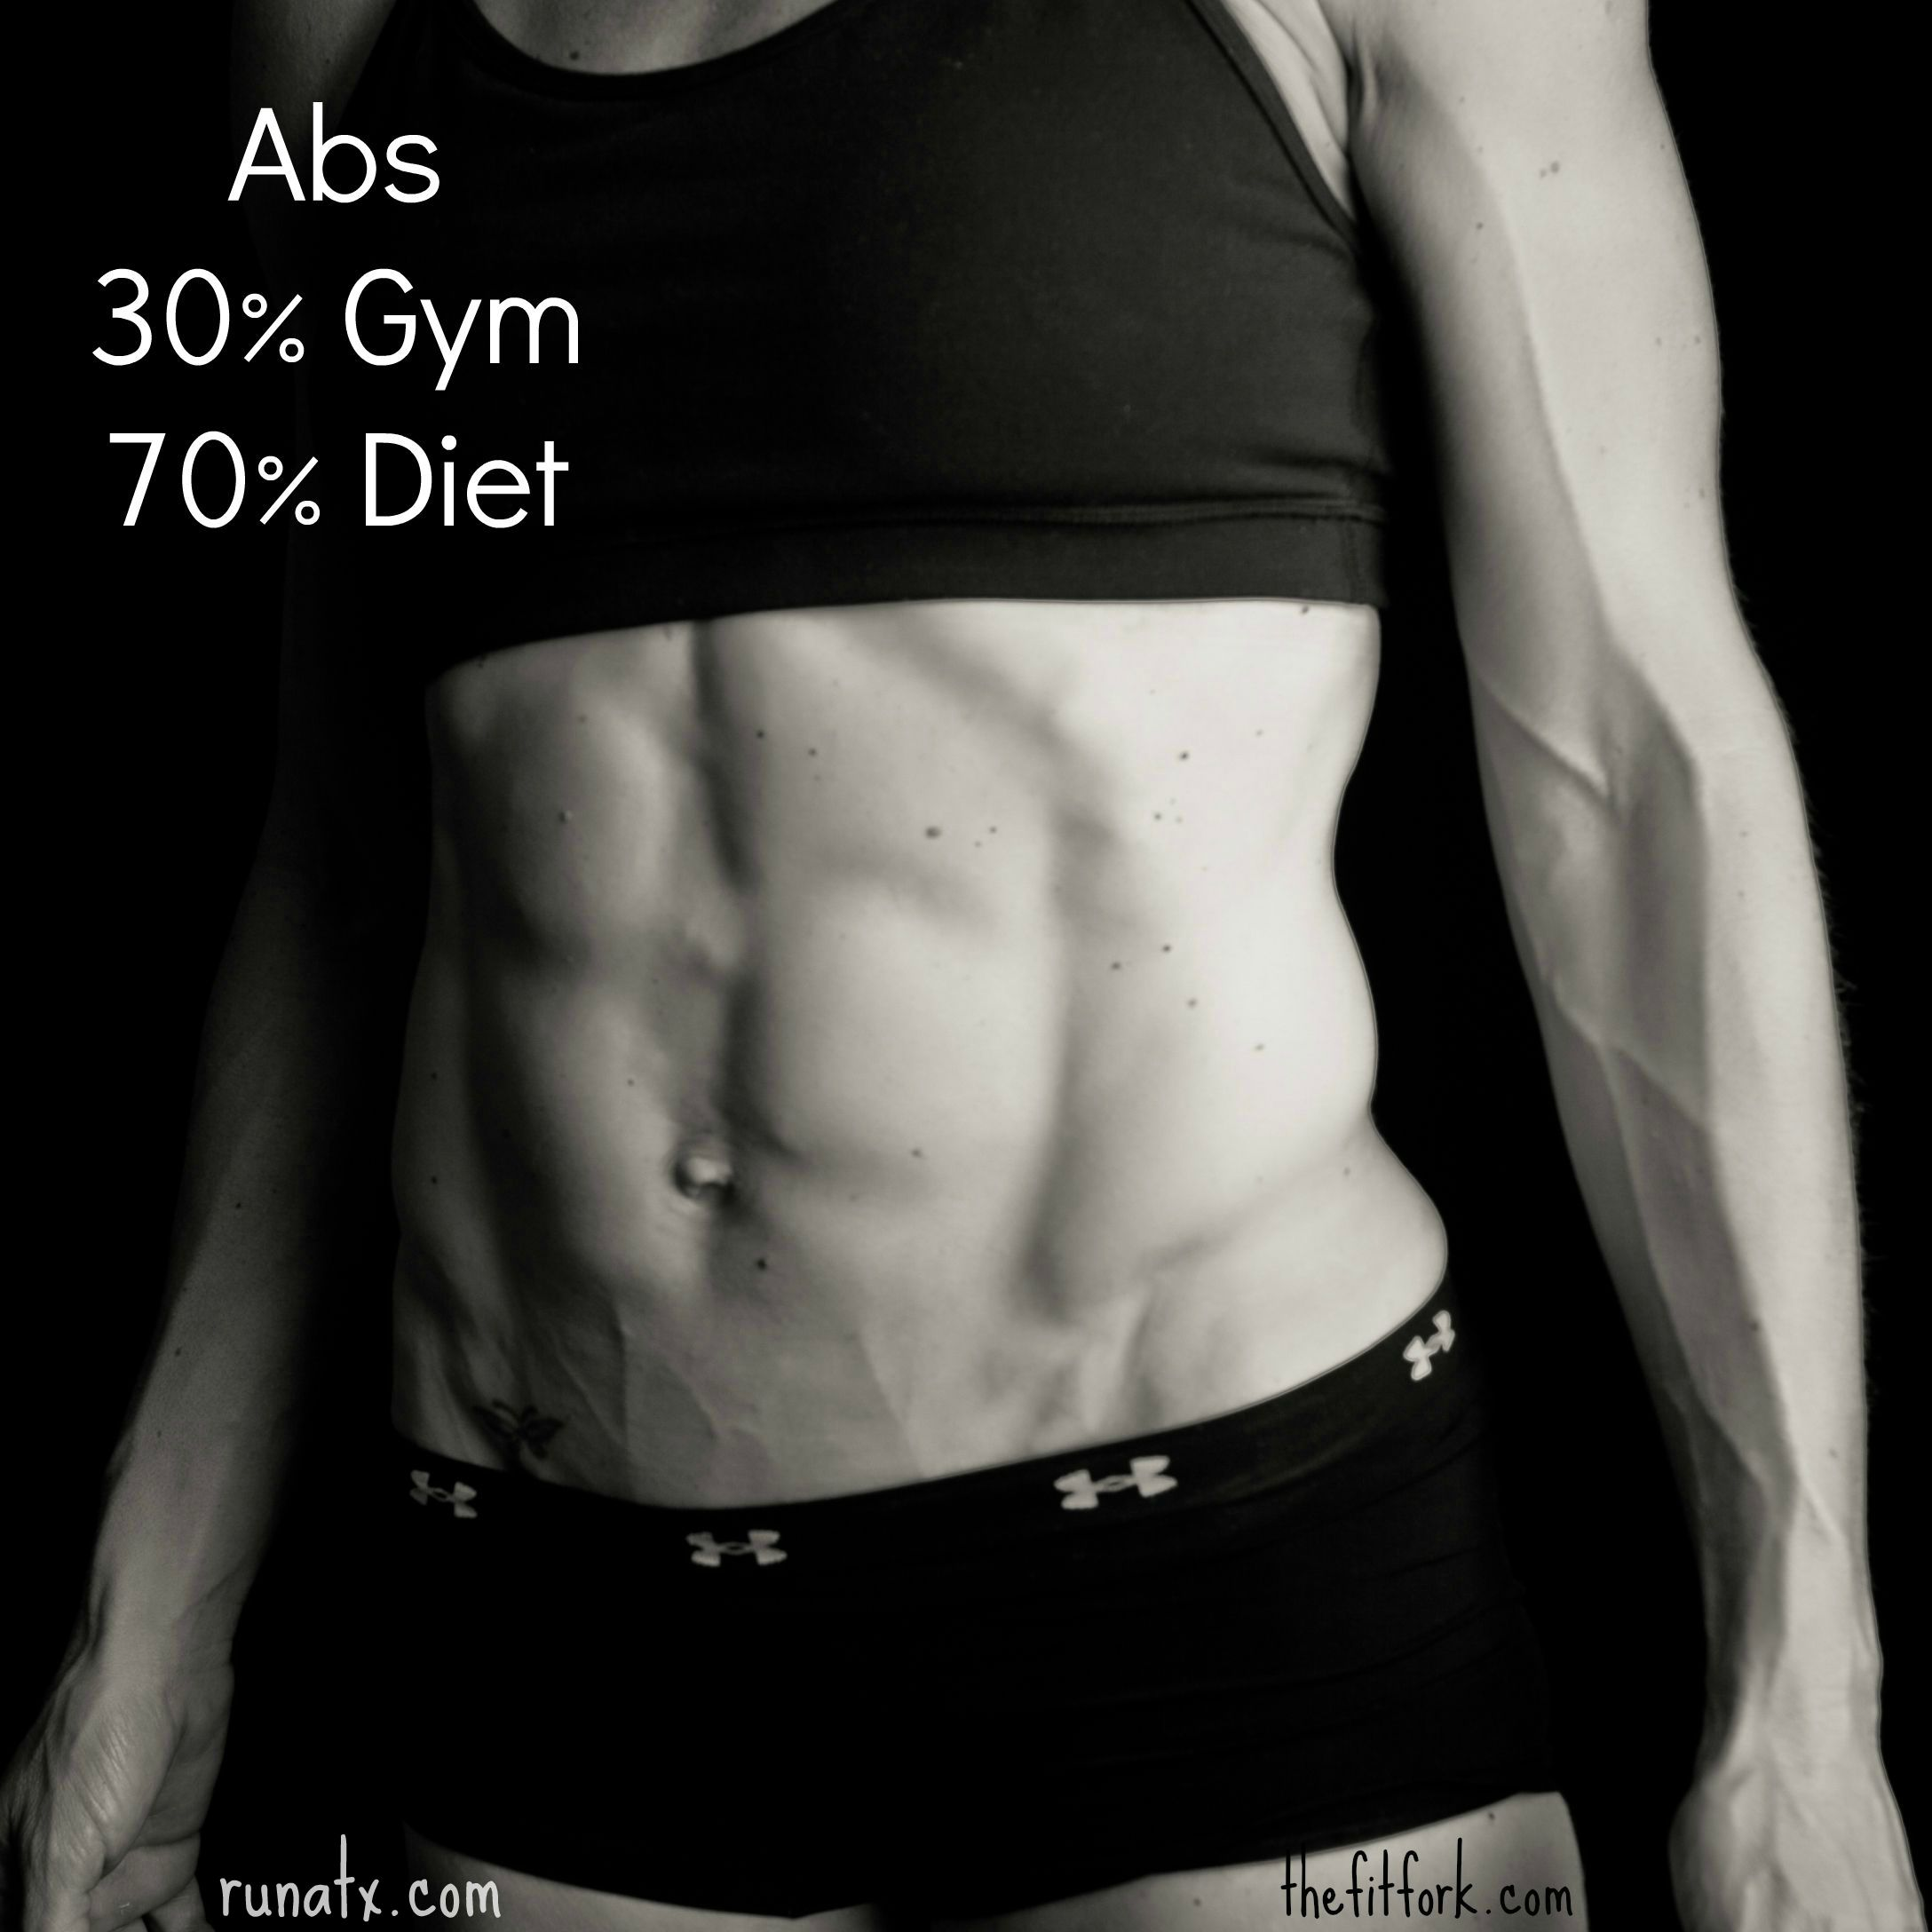 Abs are 30% gym and 70% diet